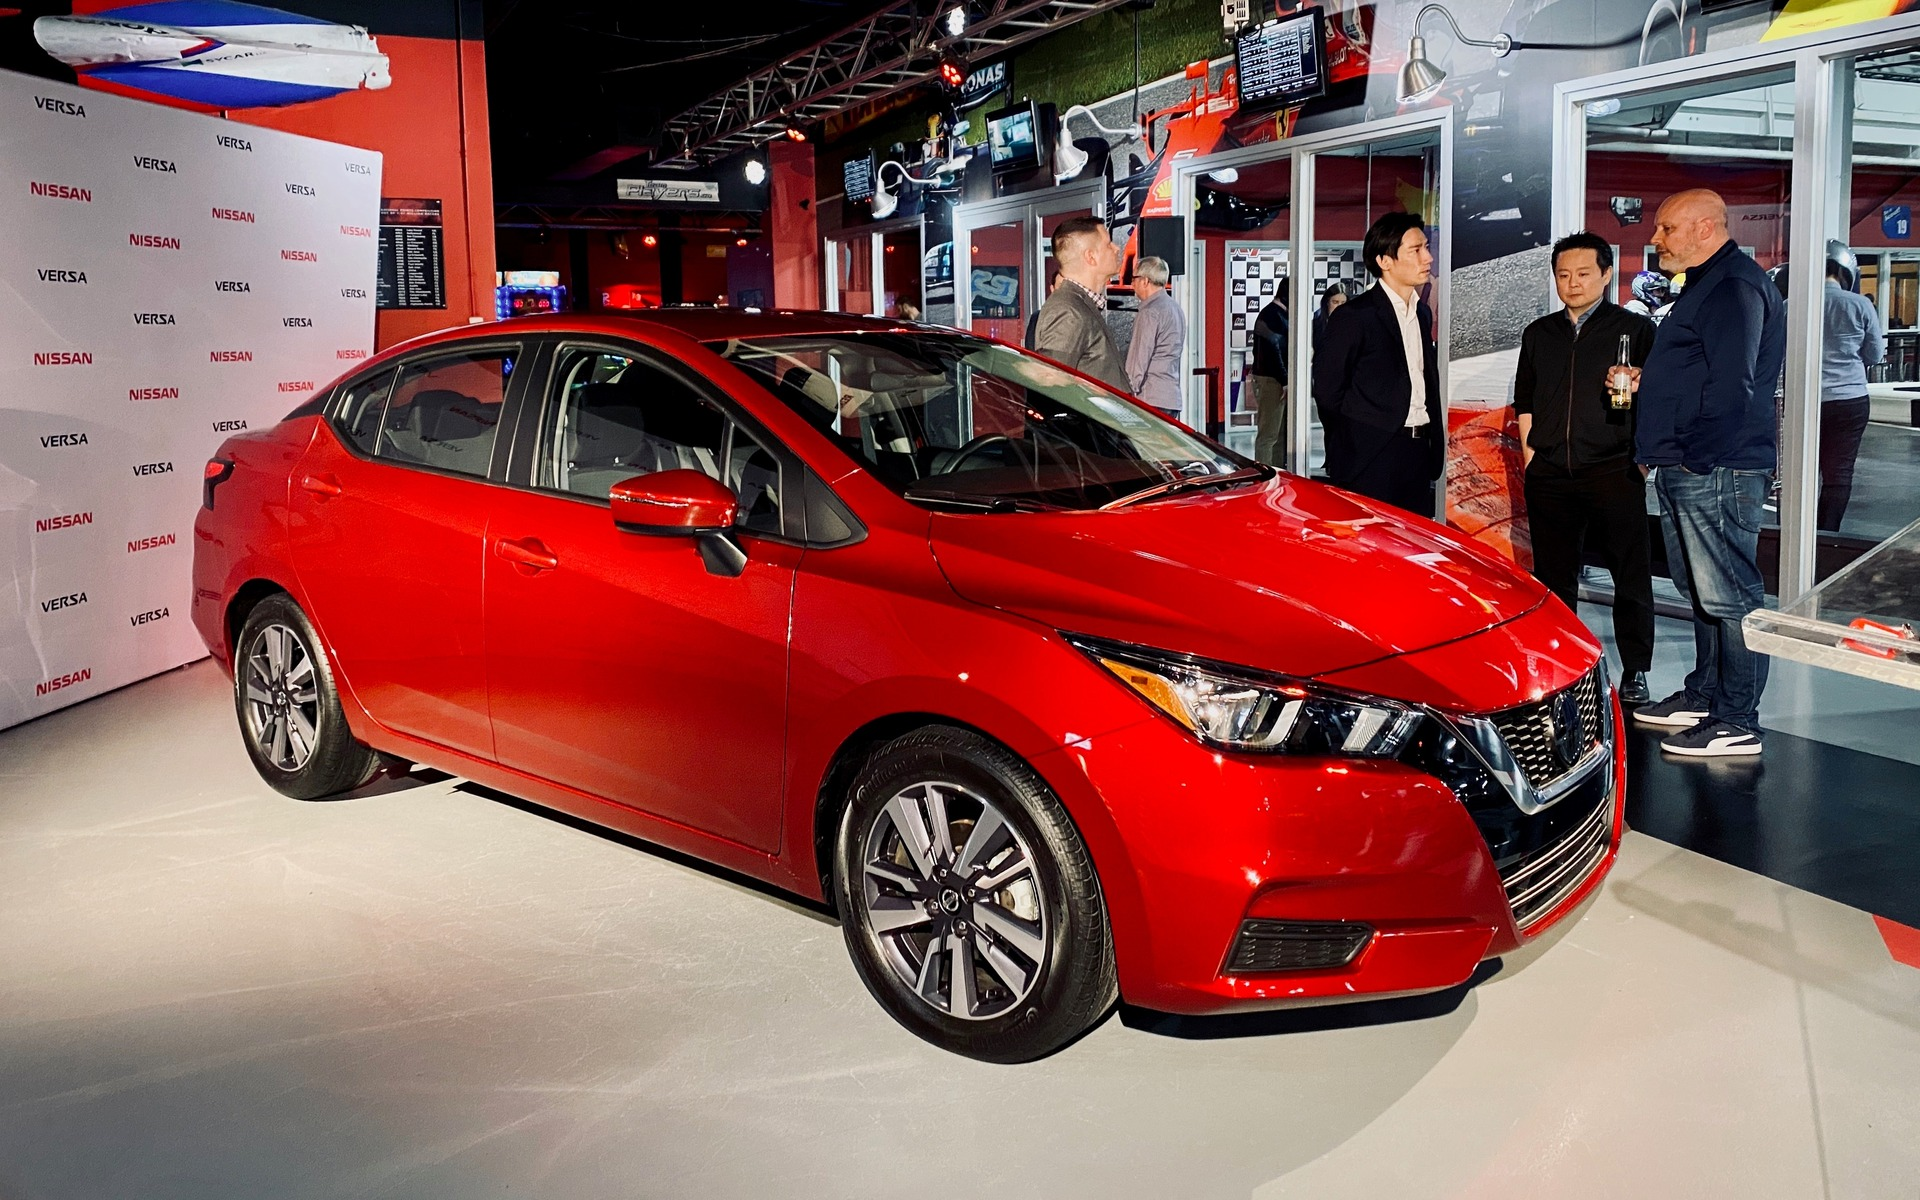 Nissan Versa Sedan is Back in Canada for 2021 - The Car Guide